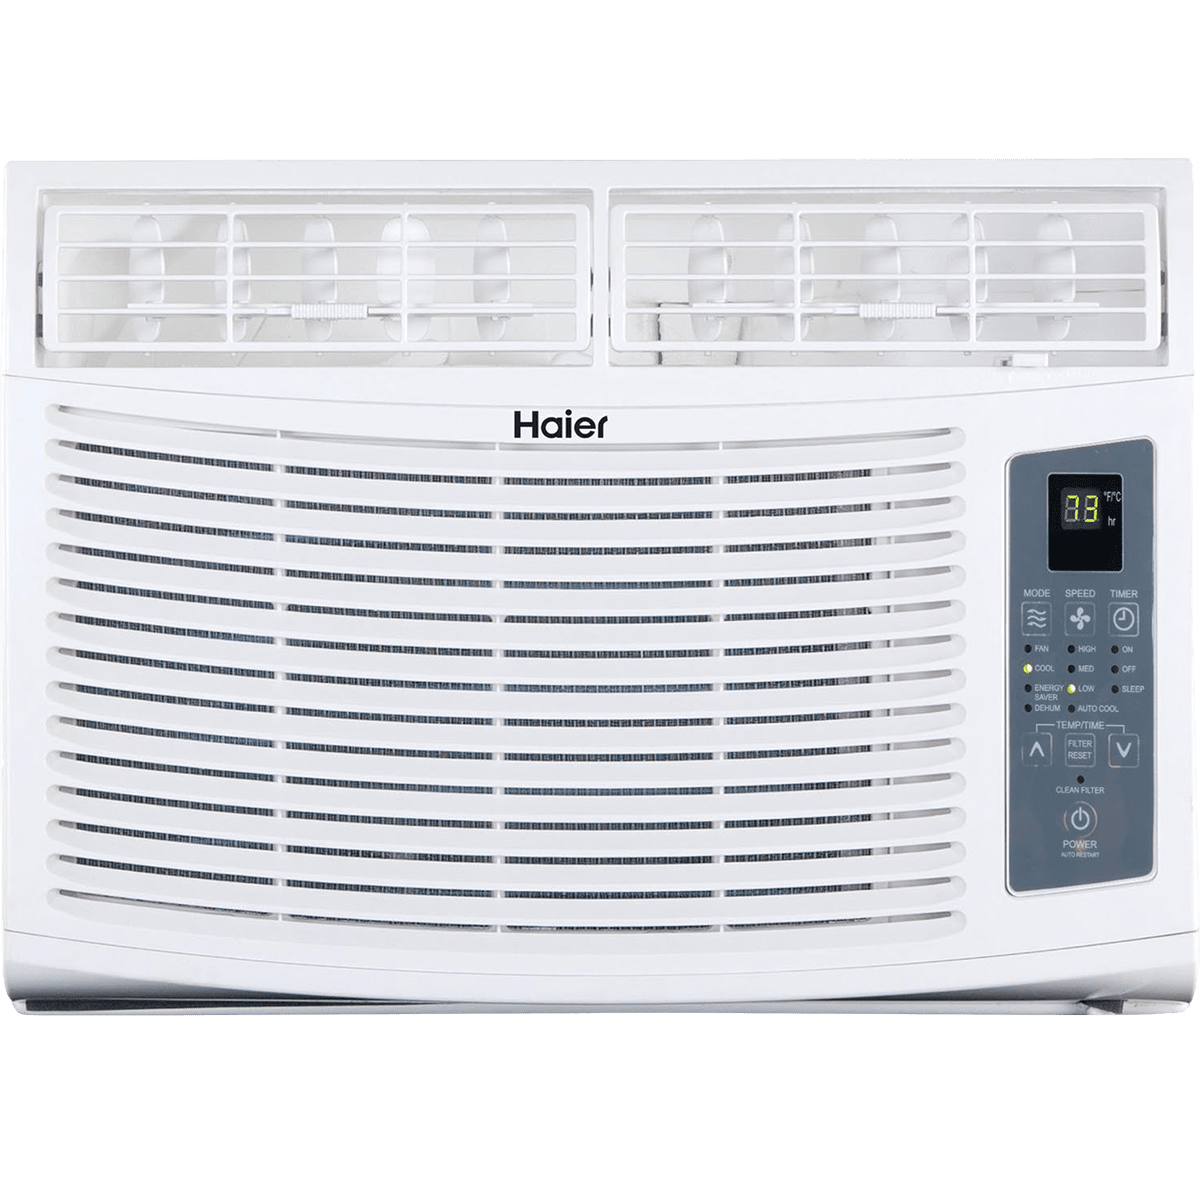 Haier HWE12XCR 12,000 BTU Window Air Conditioner ha5708